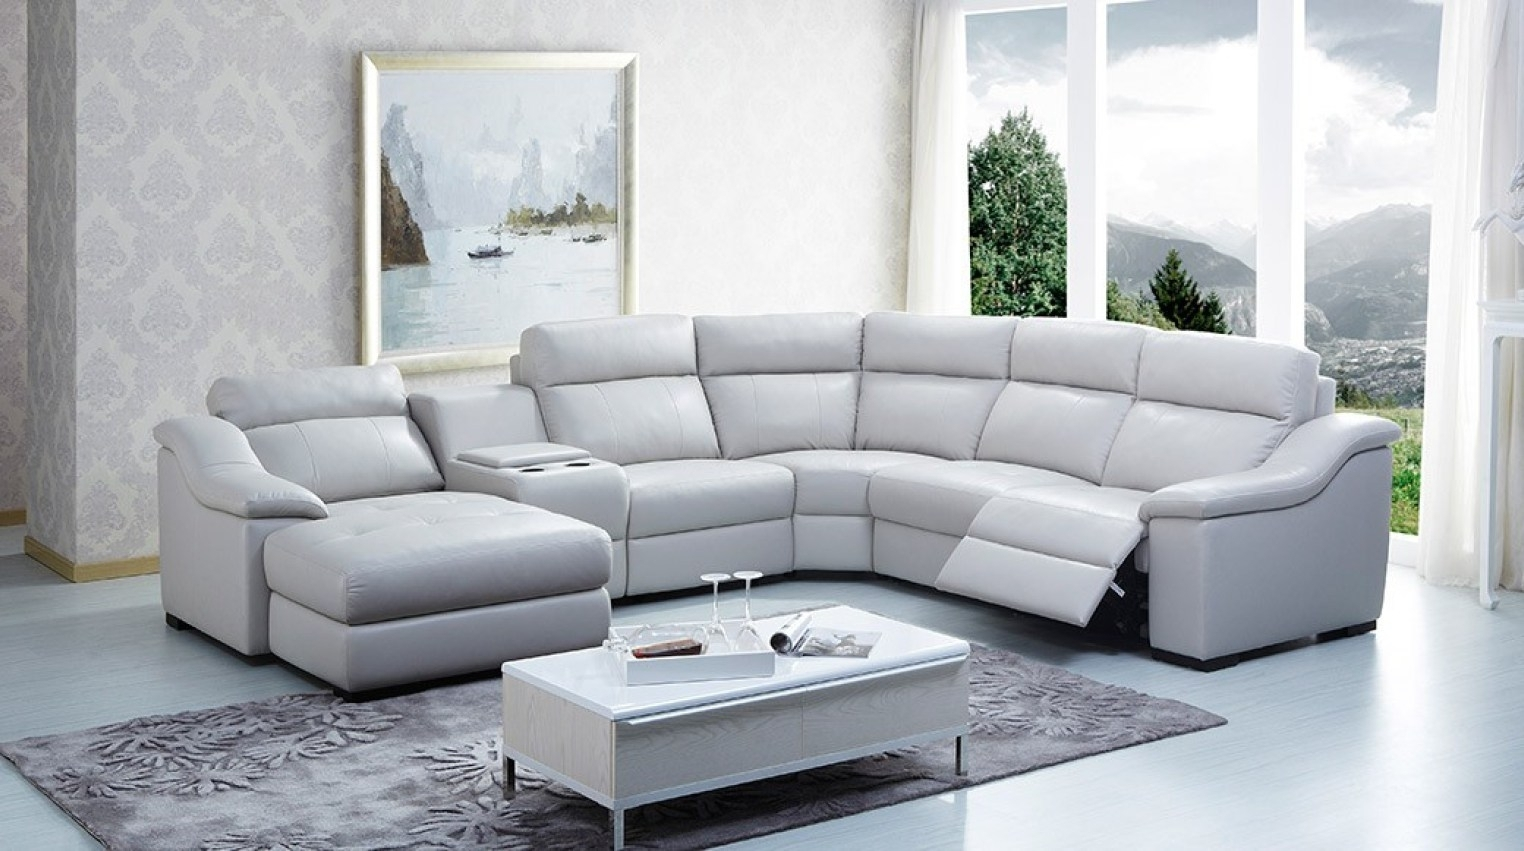 Sectional Sofas Montreal With Kijiji Montreal Sectional Sofas (Image 9 of 10)